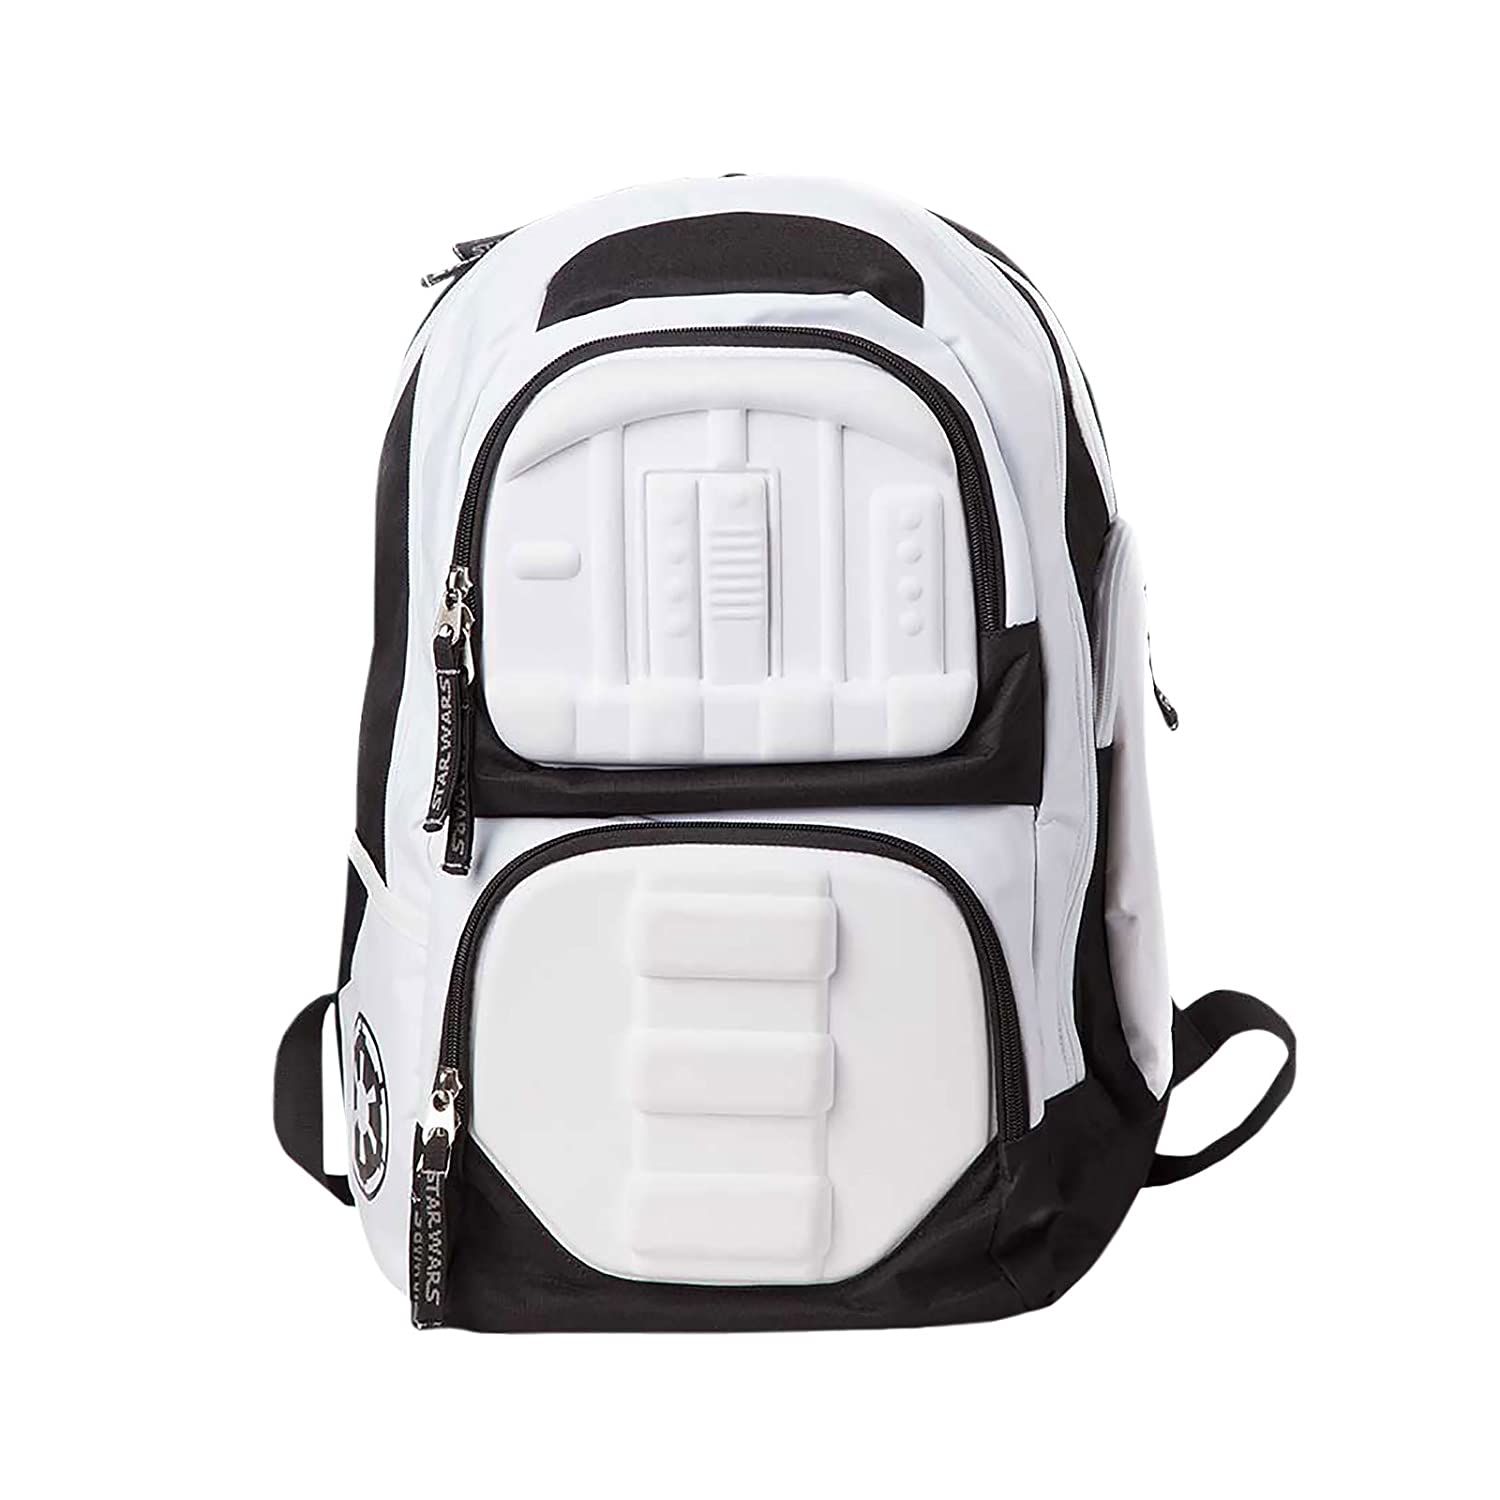 e8cabecd5c31 Star Wars Backpack 3D Stormtrooper Bioworld Borse high-quality ...